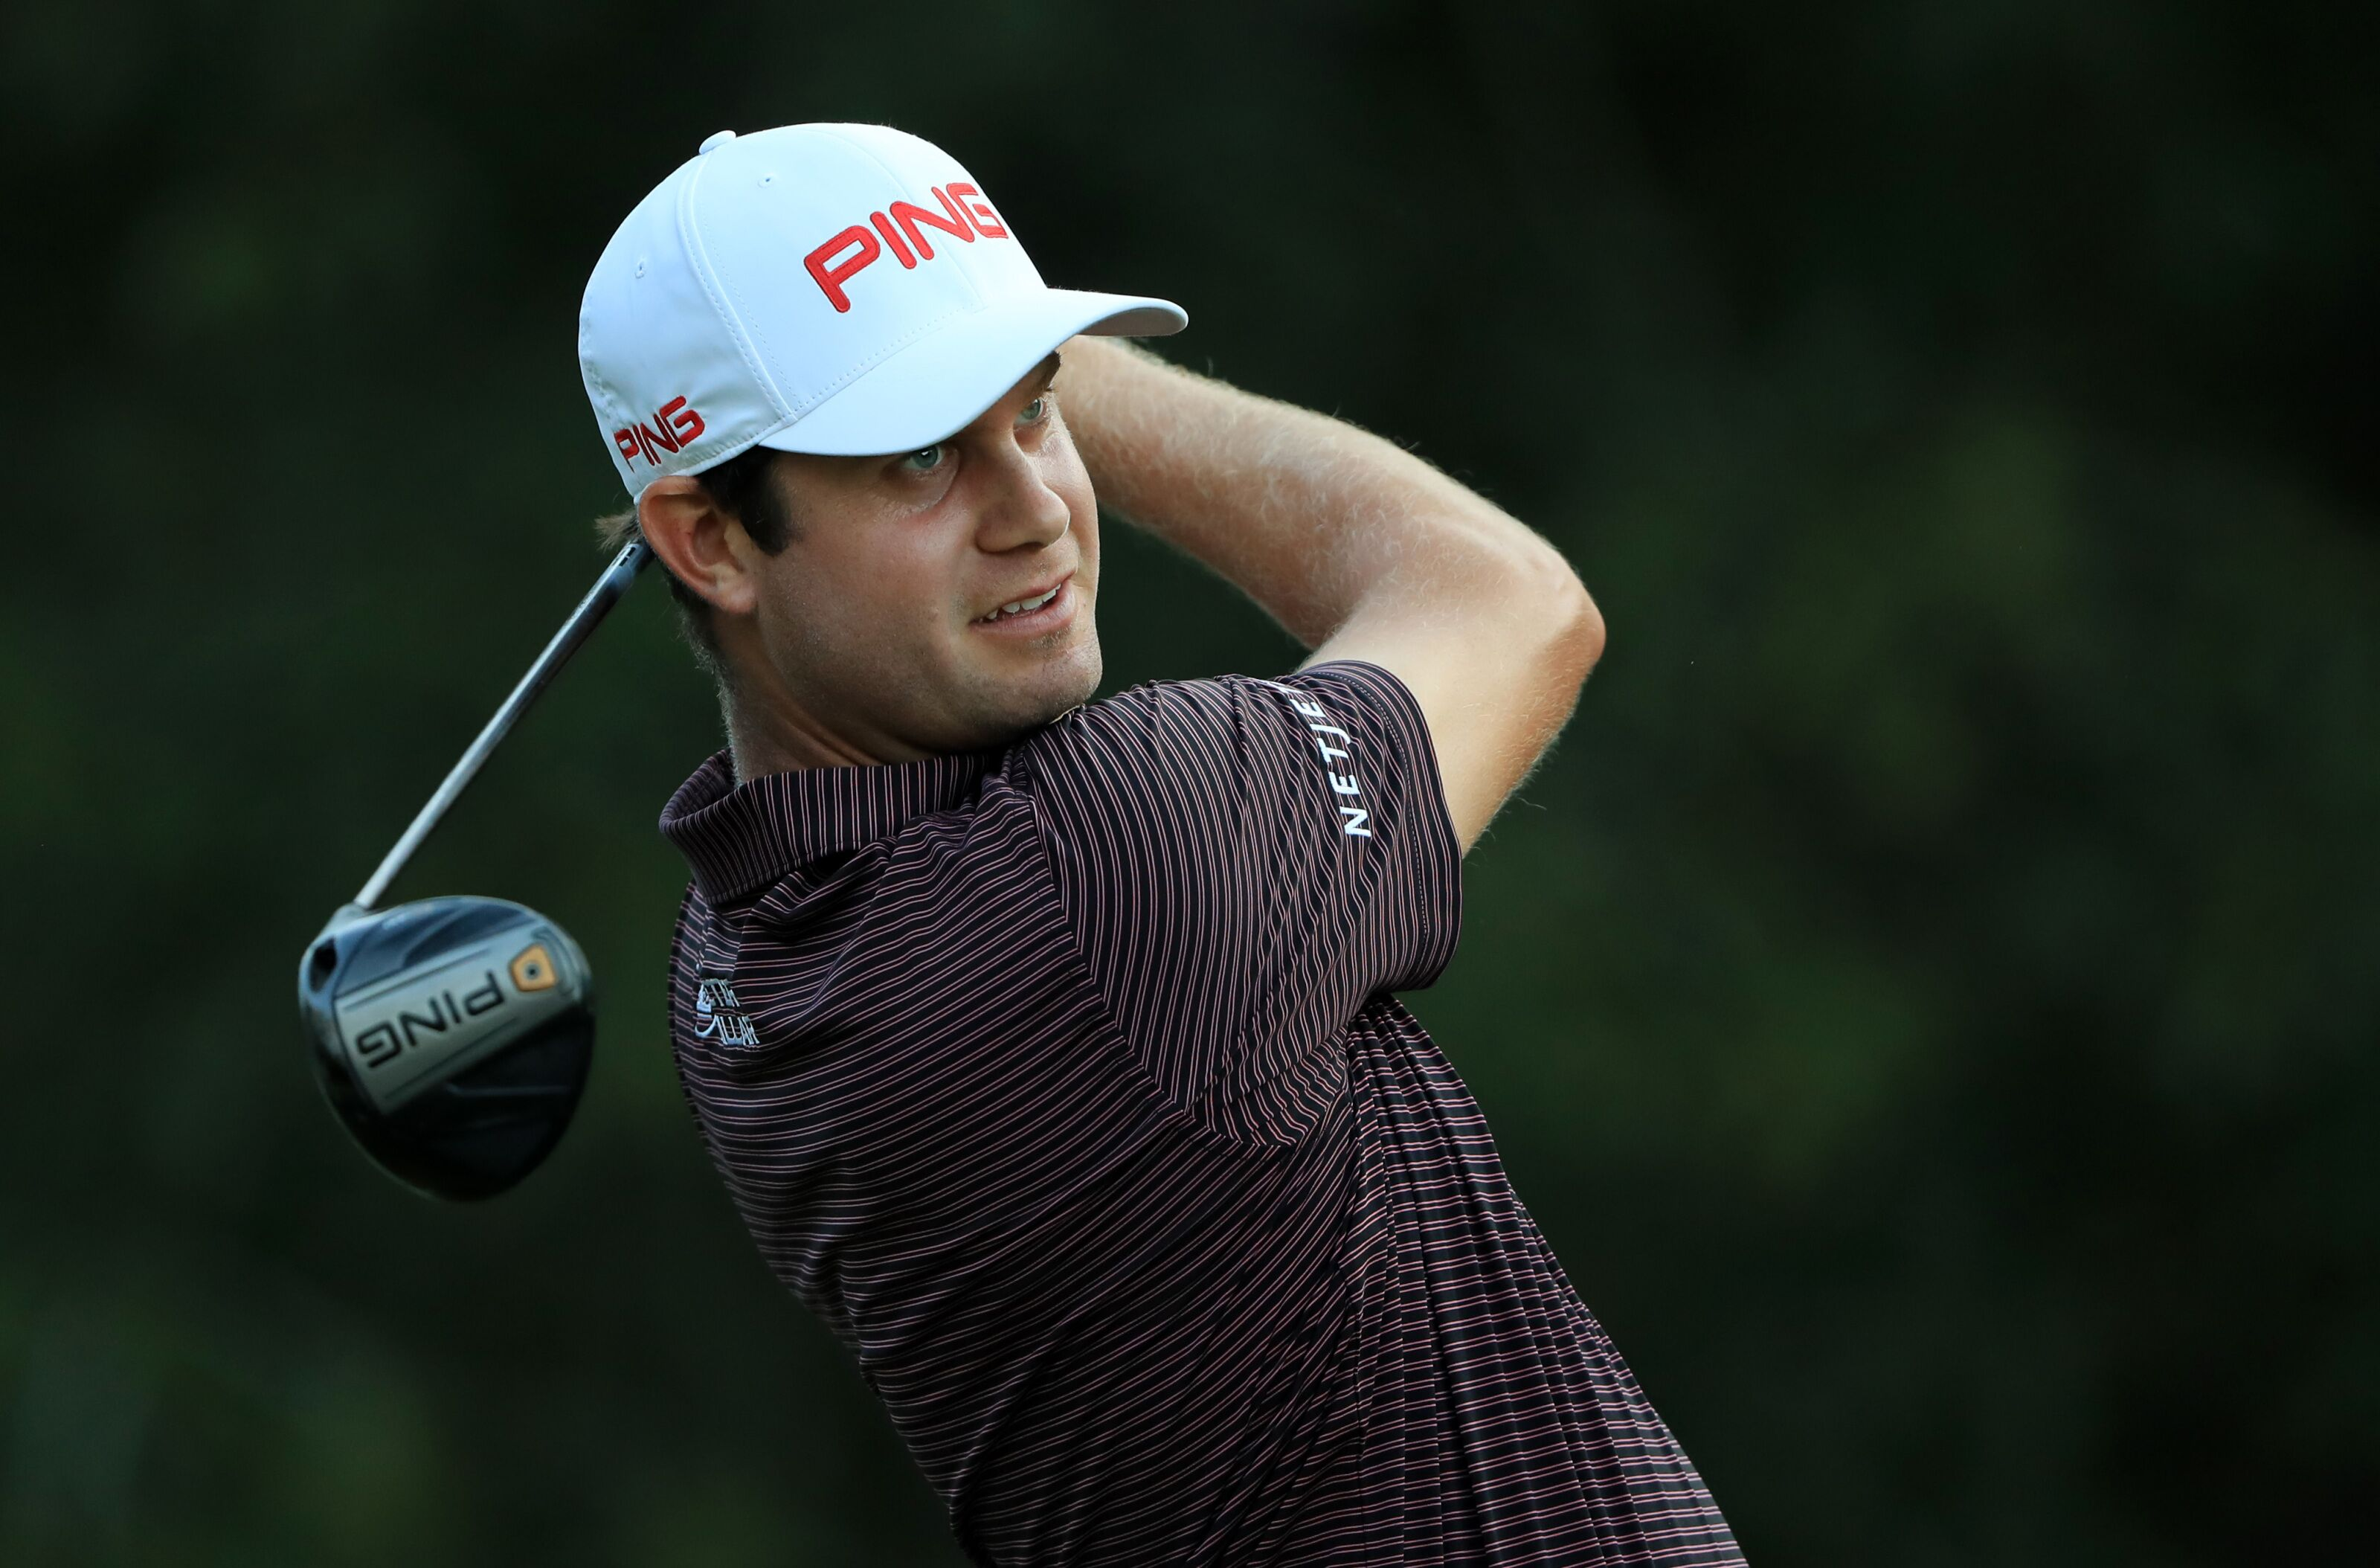 The Fall swing: Some Mid-Term Awards for the 2020 PGA Tour Season